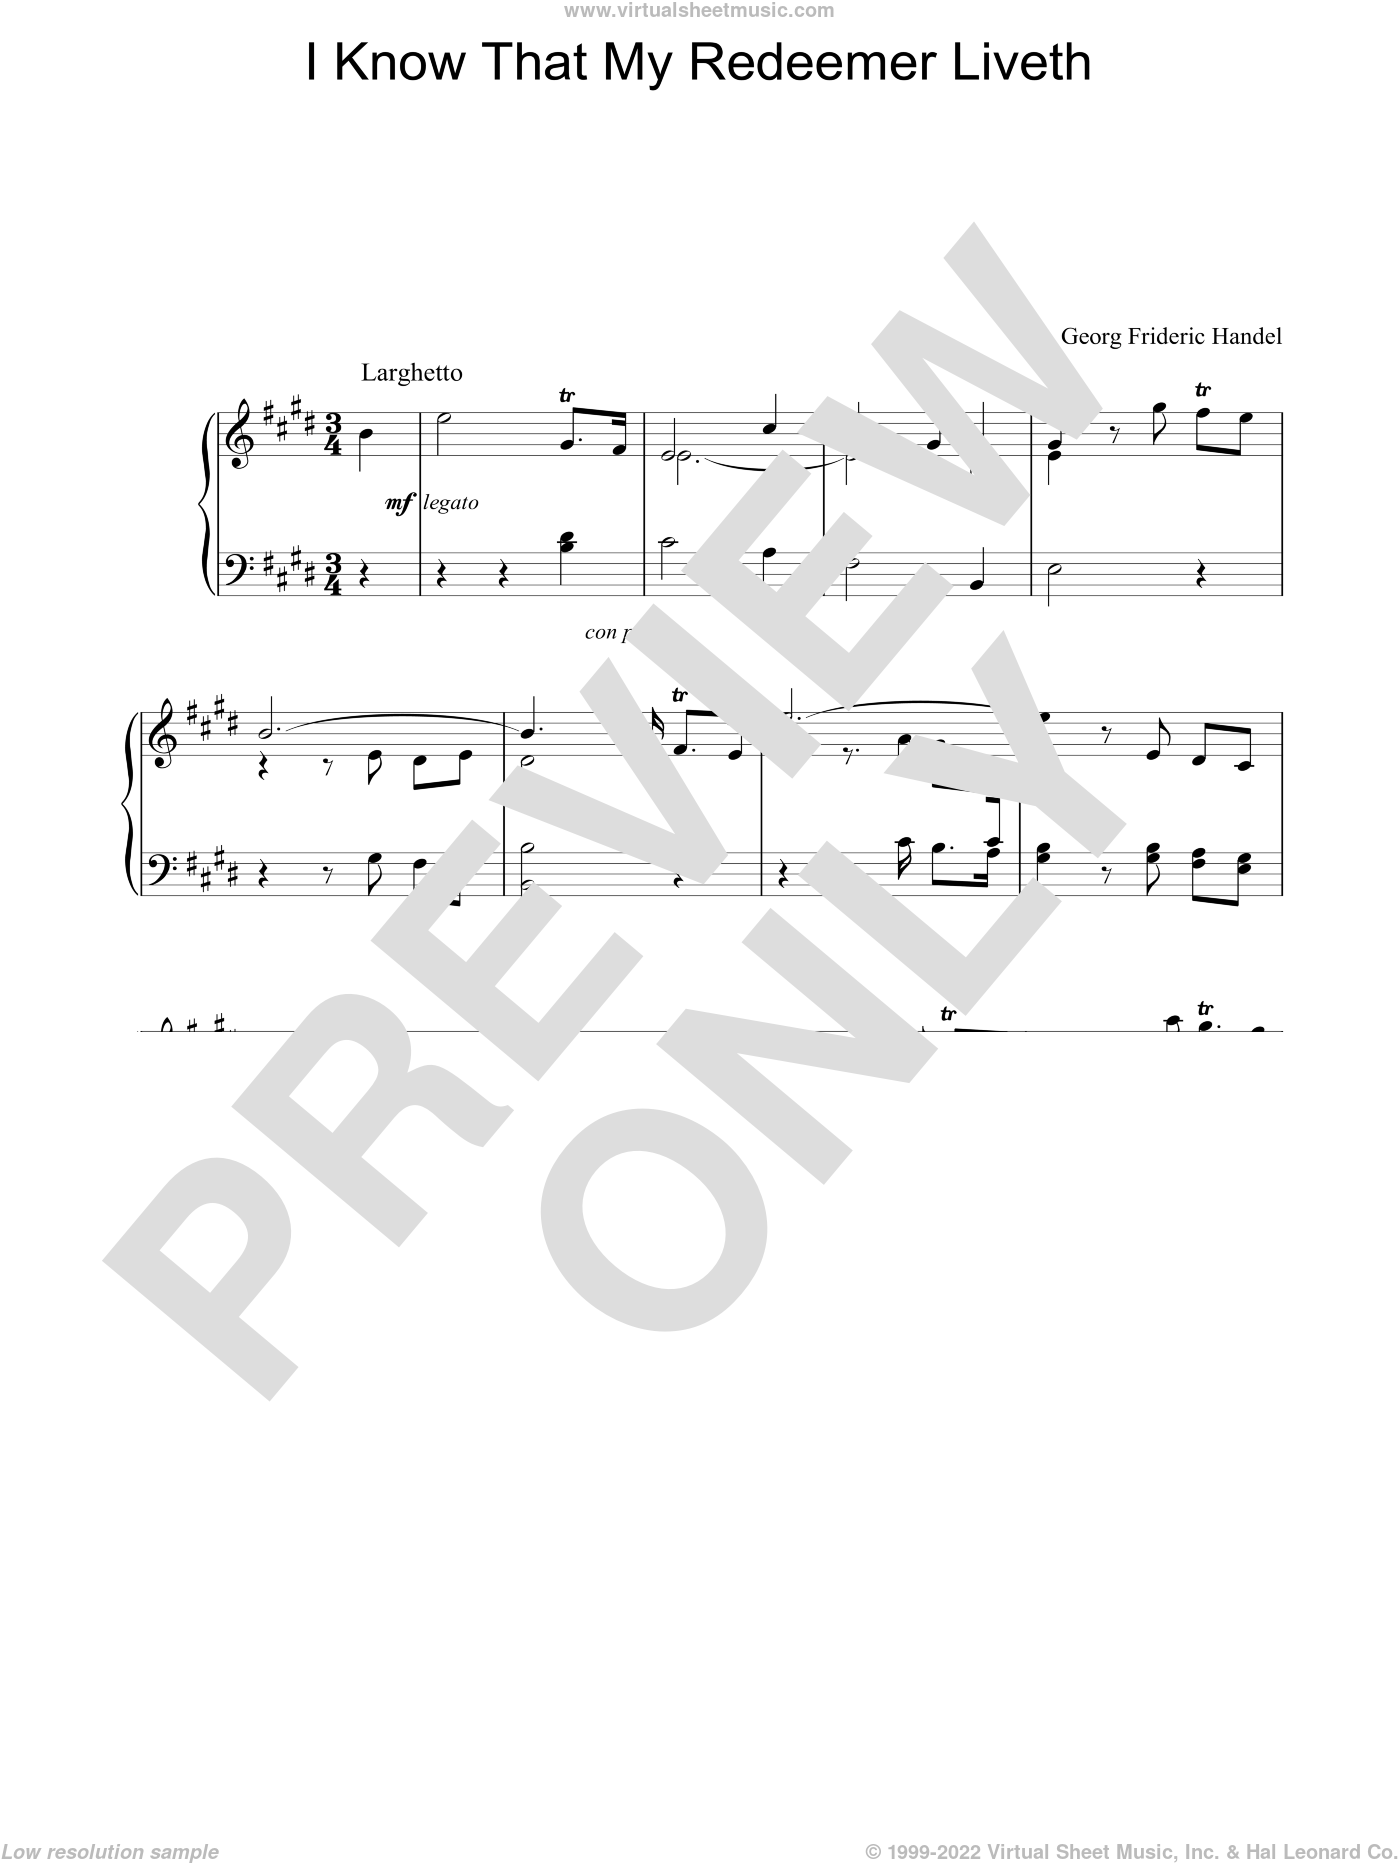 I Know That My Redeemer Liveth sheet music for piano solo by George Frideric Handel, classical score, intermediate skill level